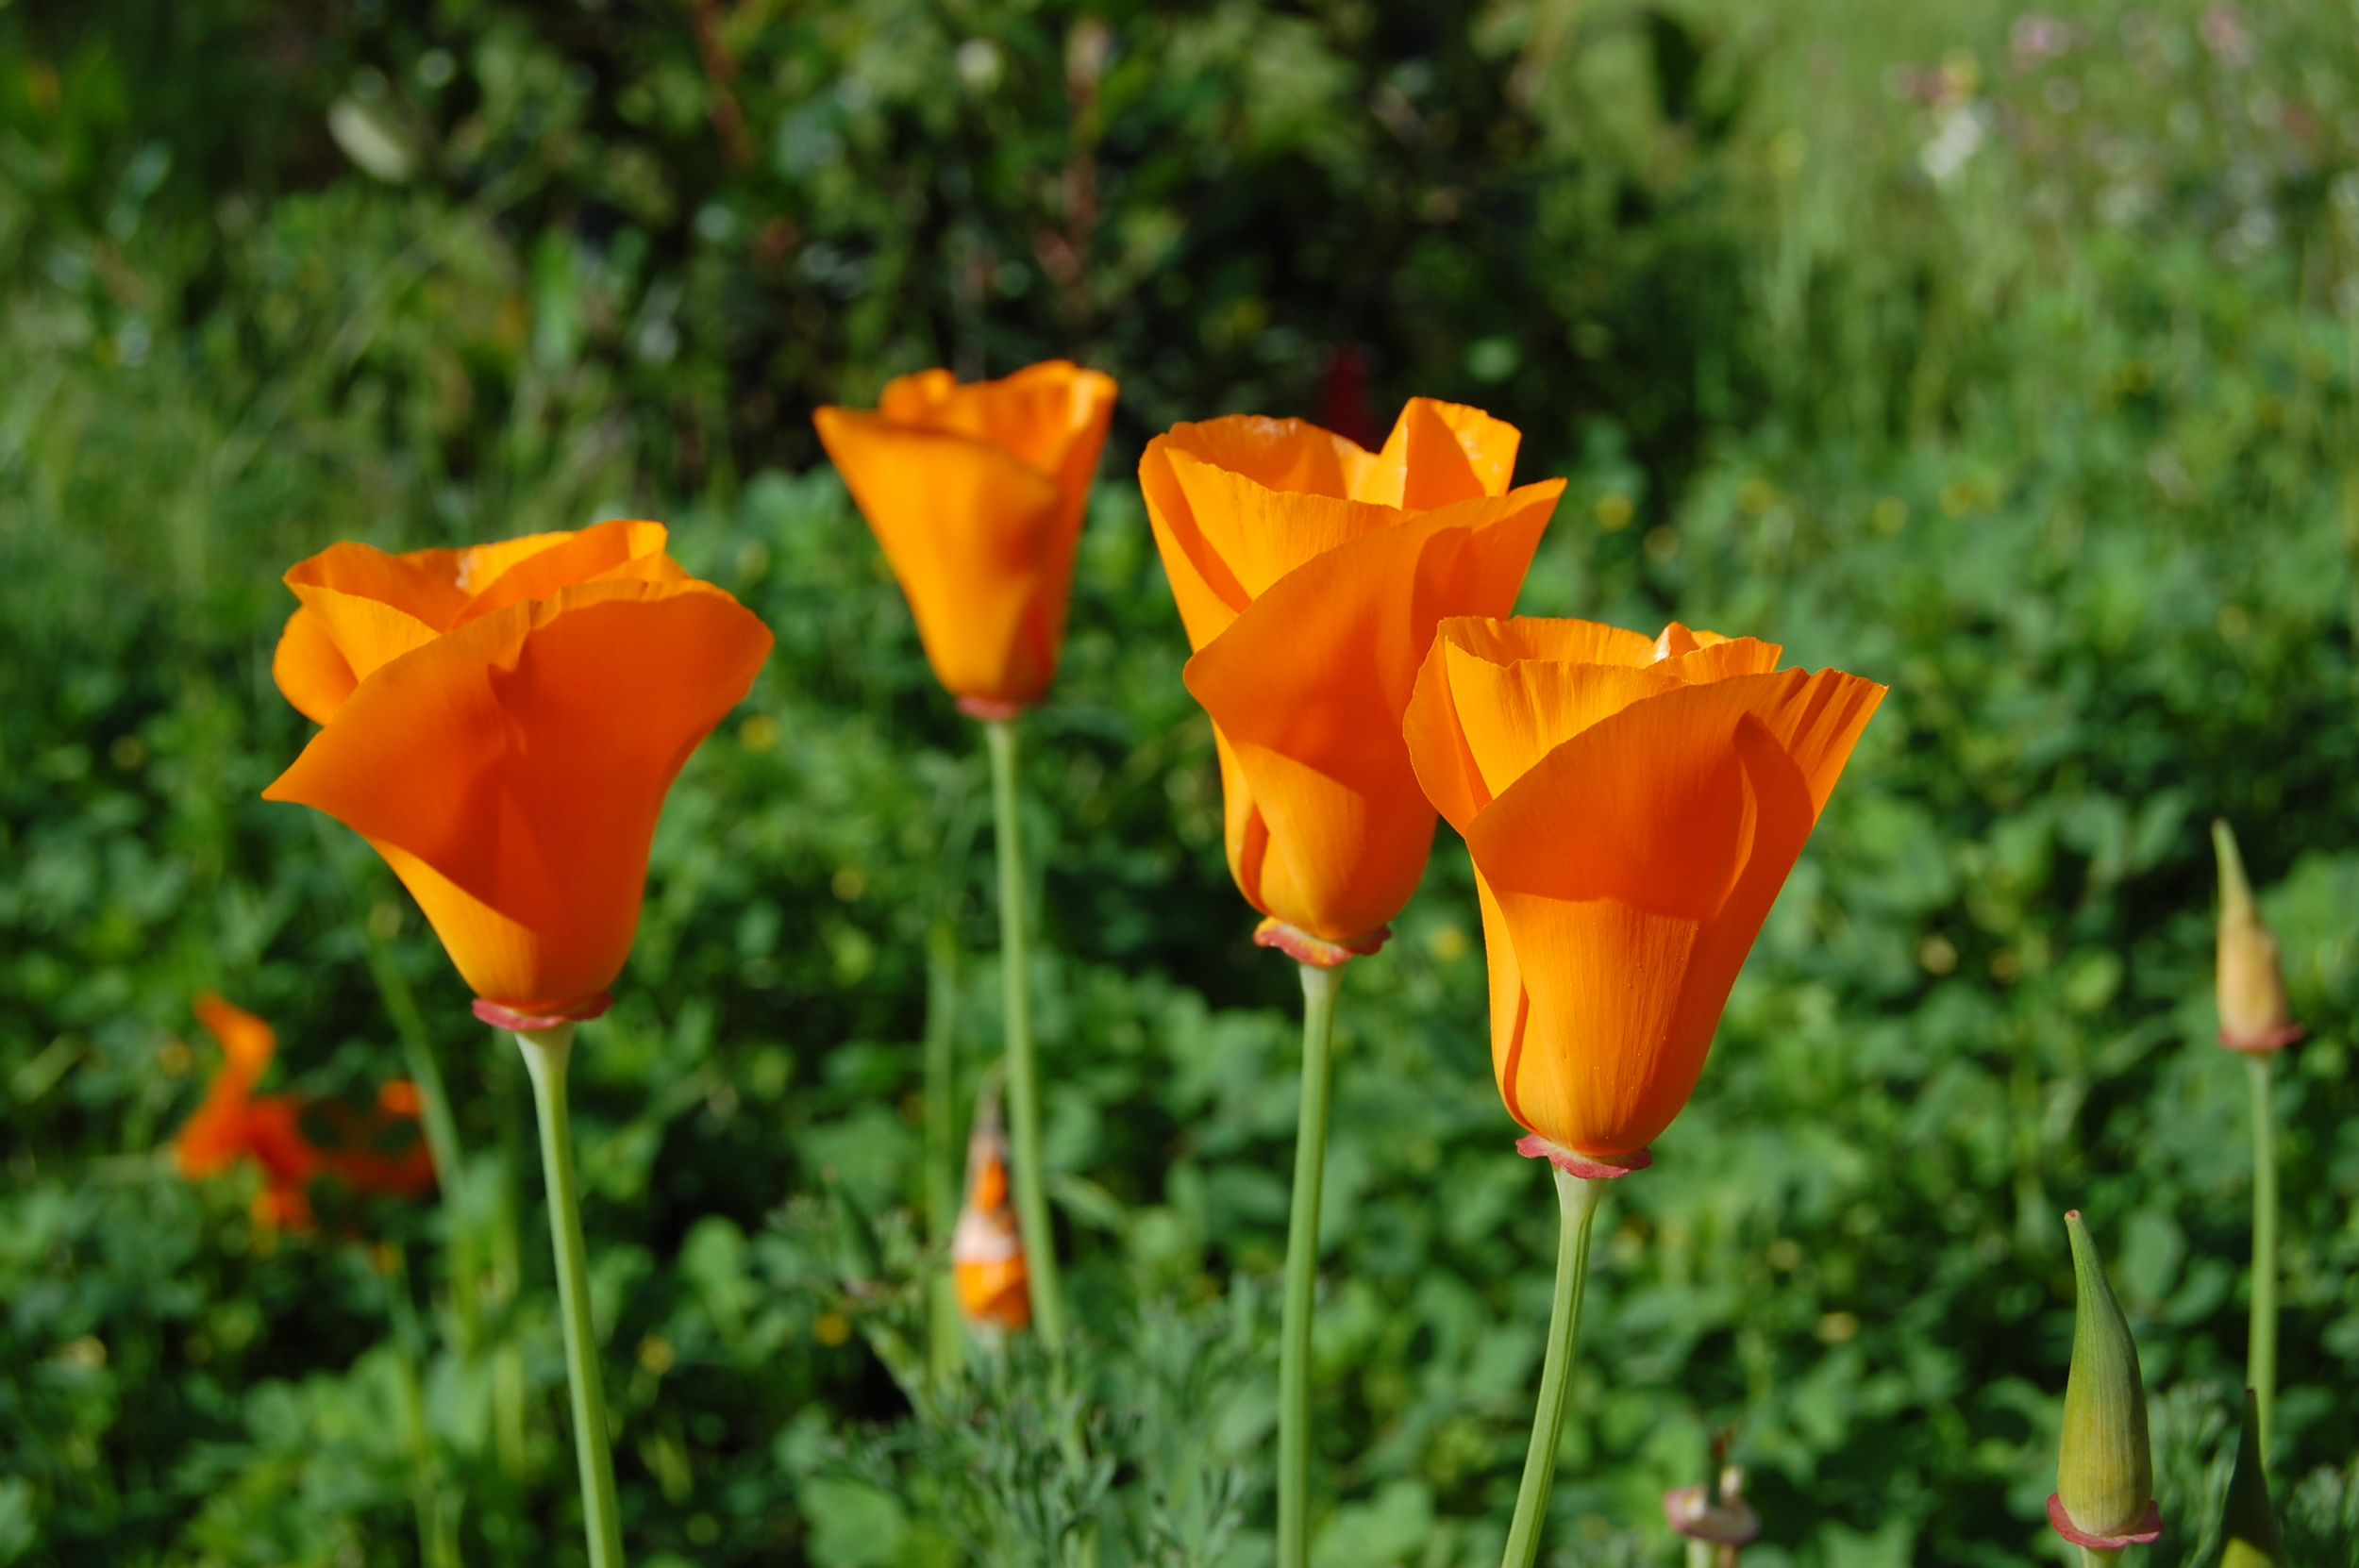 California Poppies in March